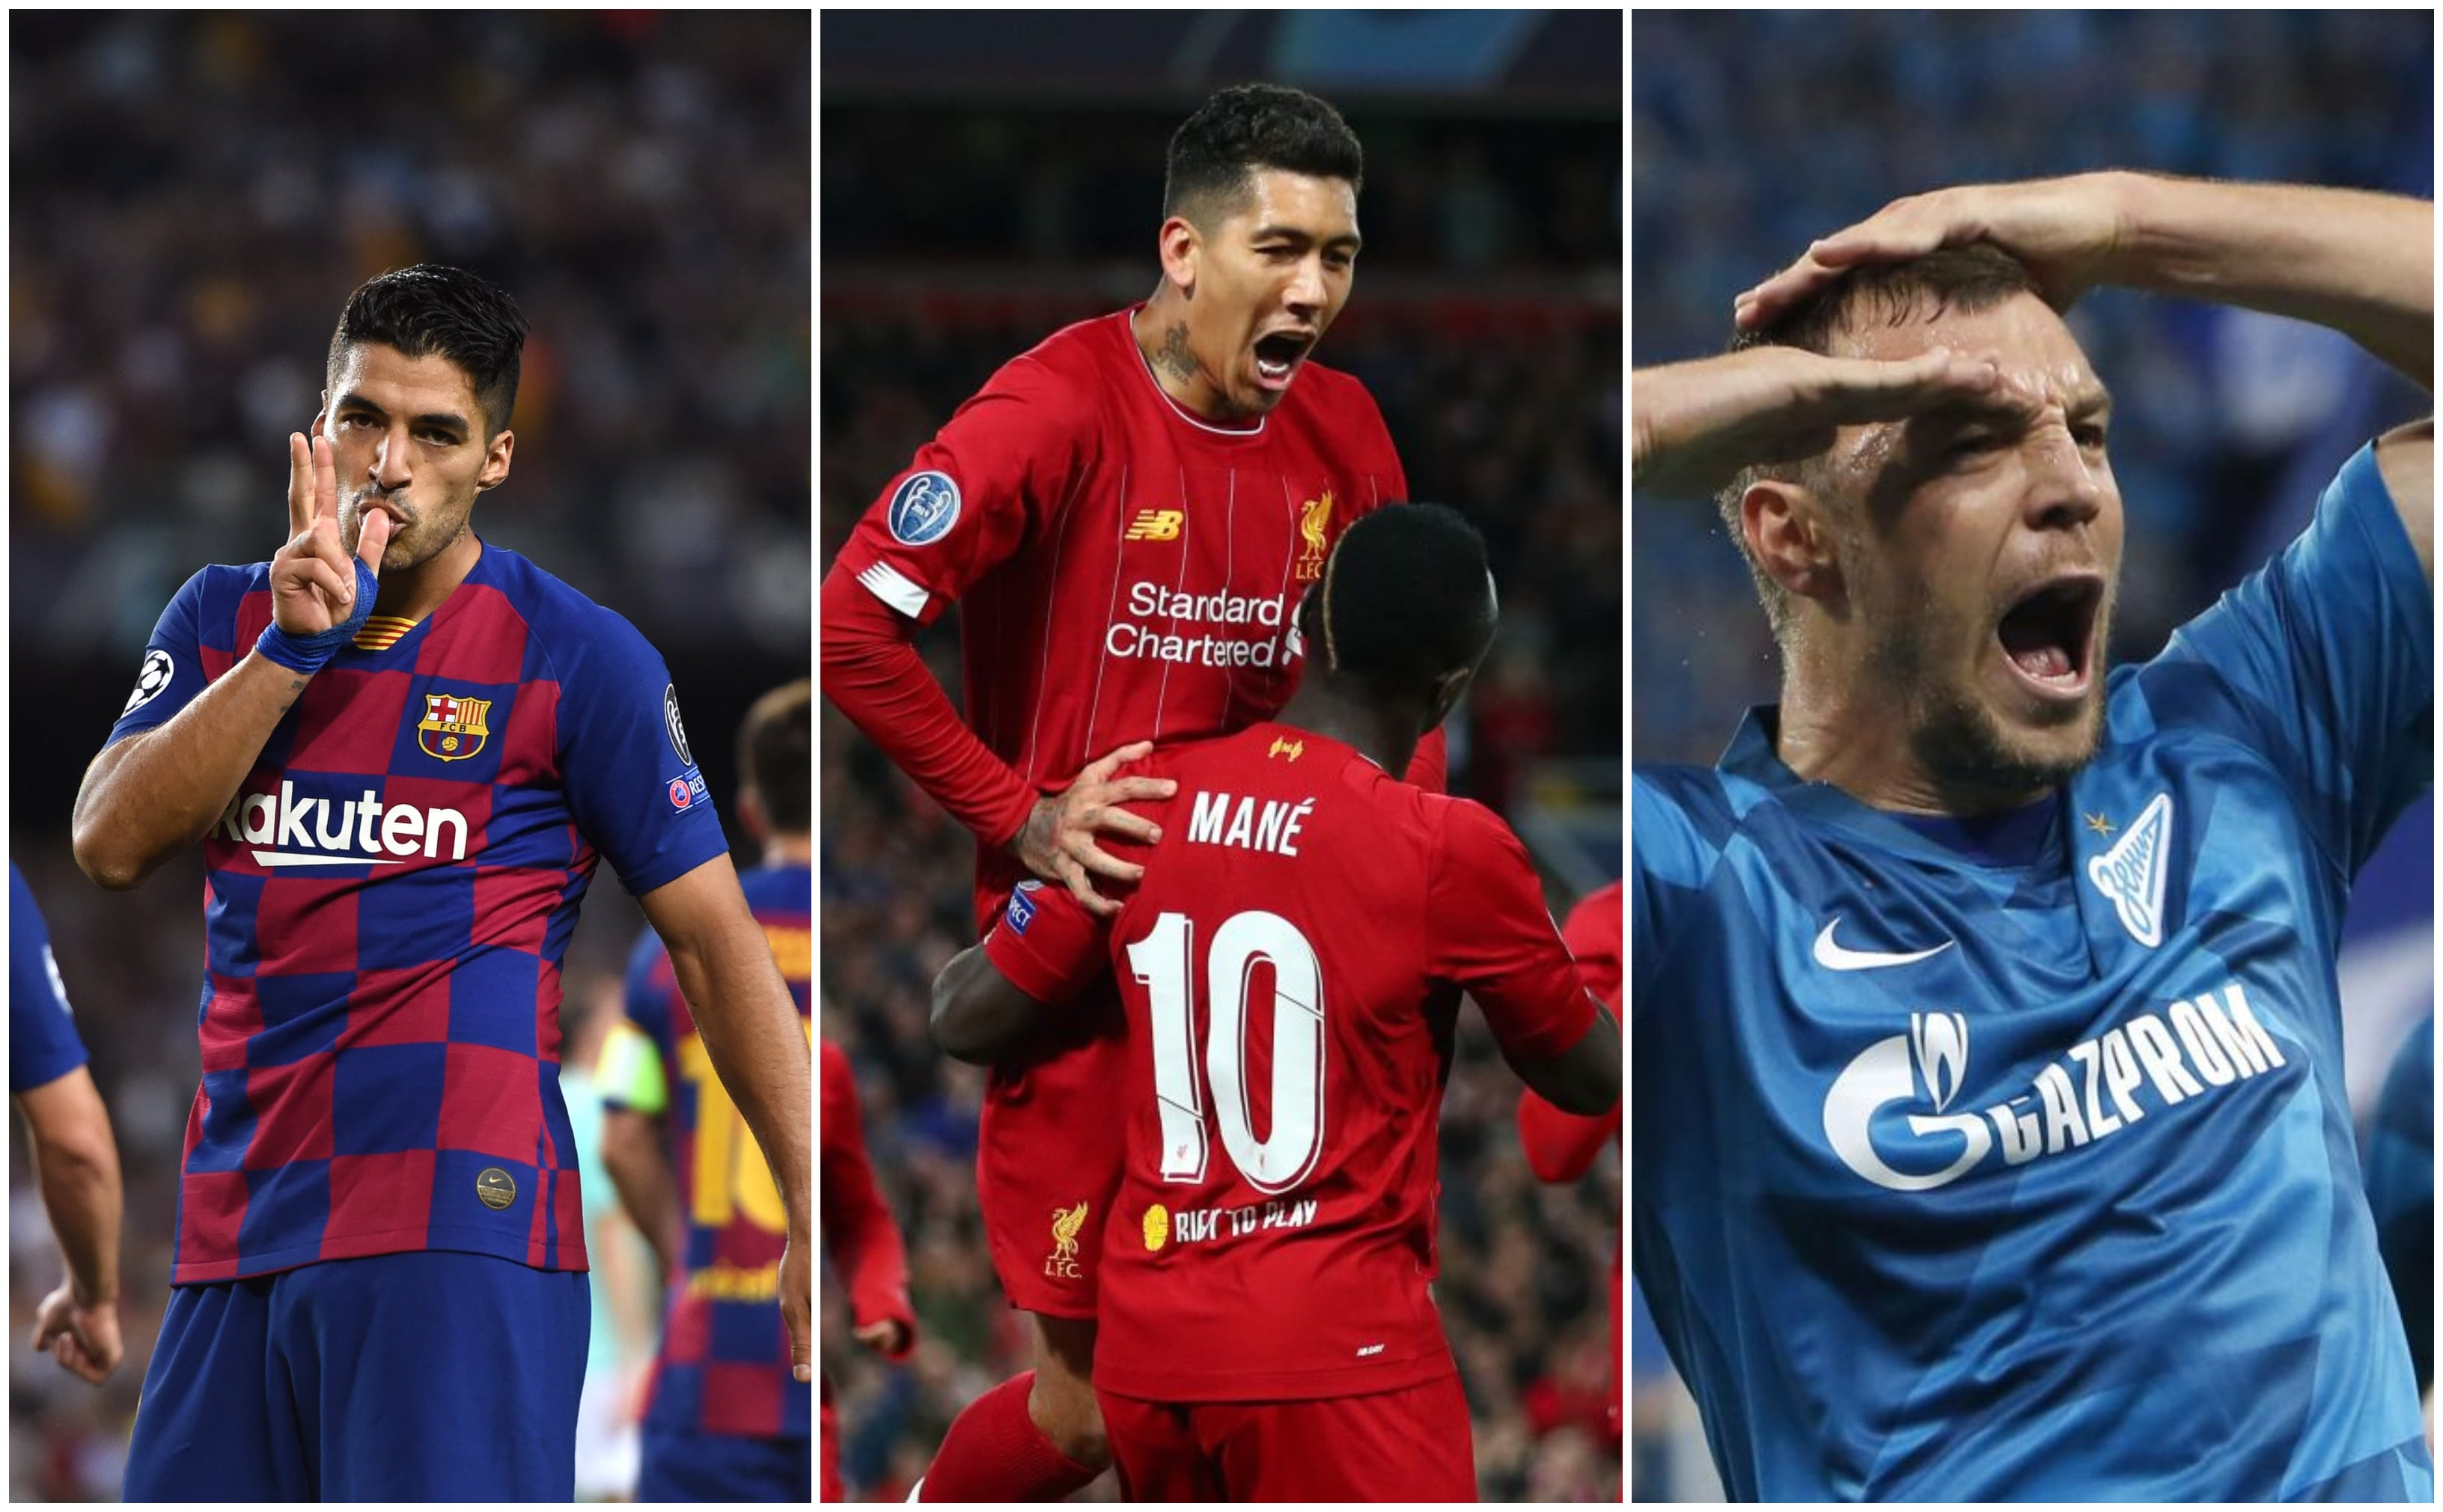 Champions League Round Up for Wednesday, 03.10.2019